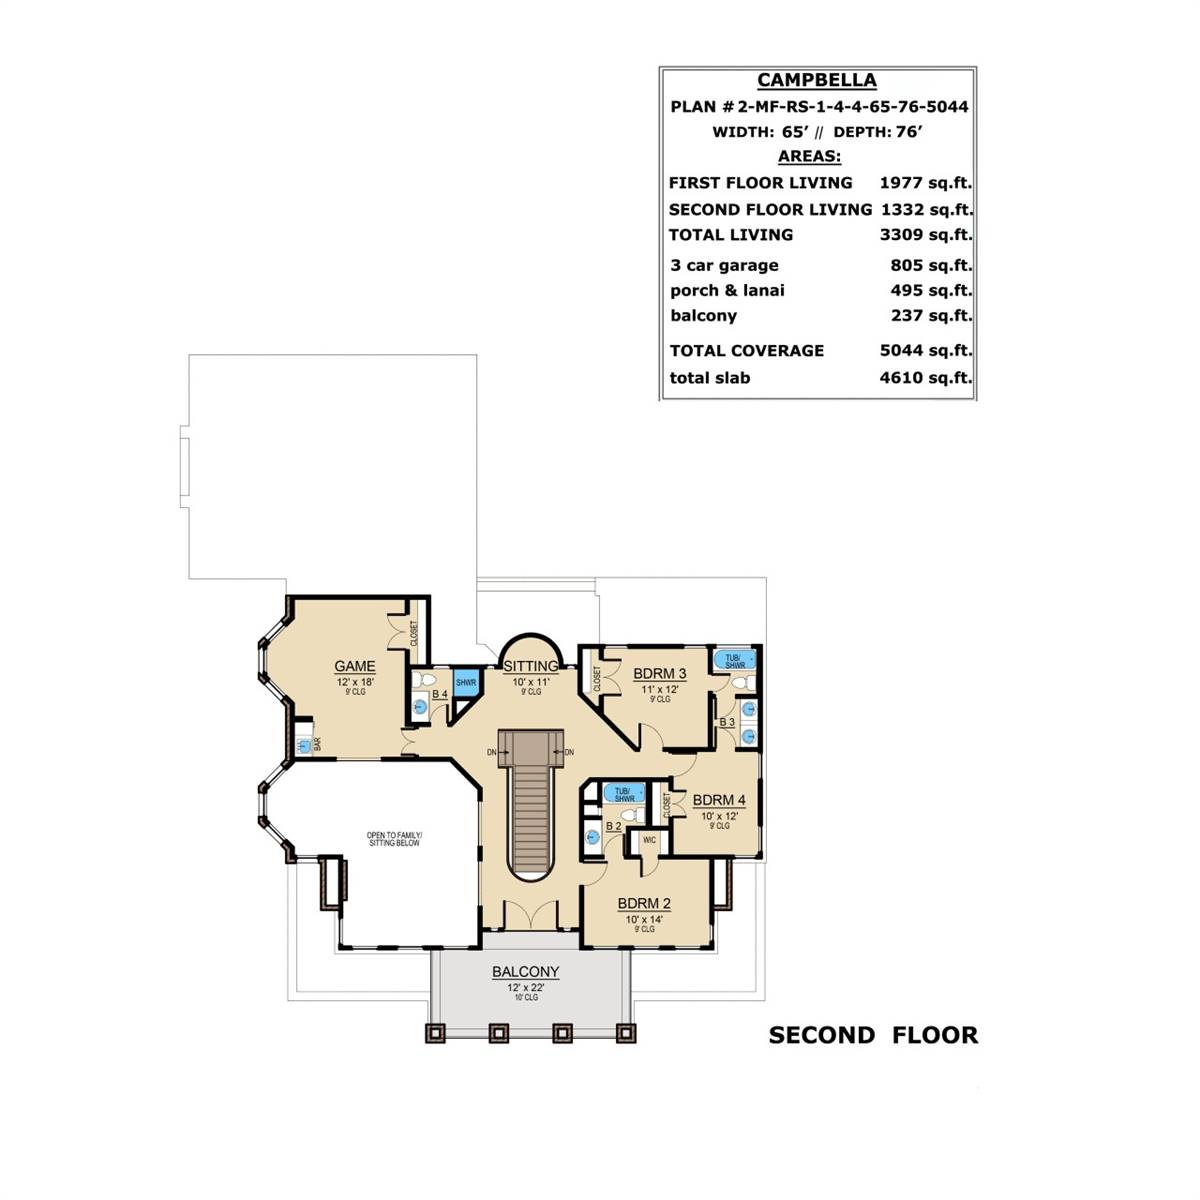 2nd Floor image of Campbella House Plan